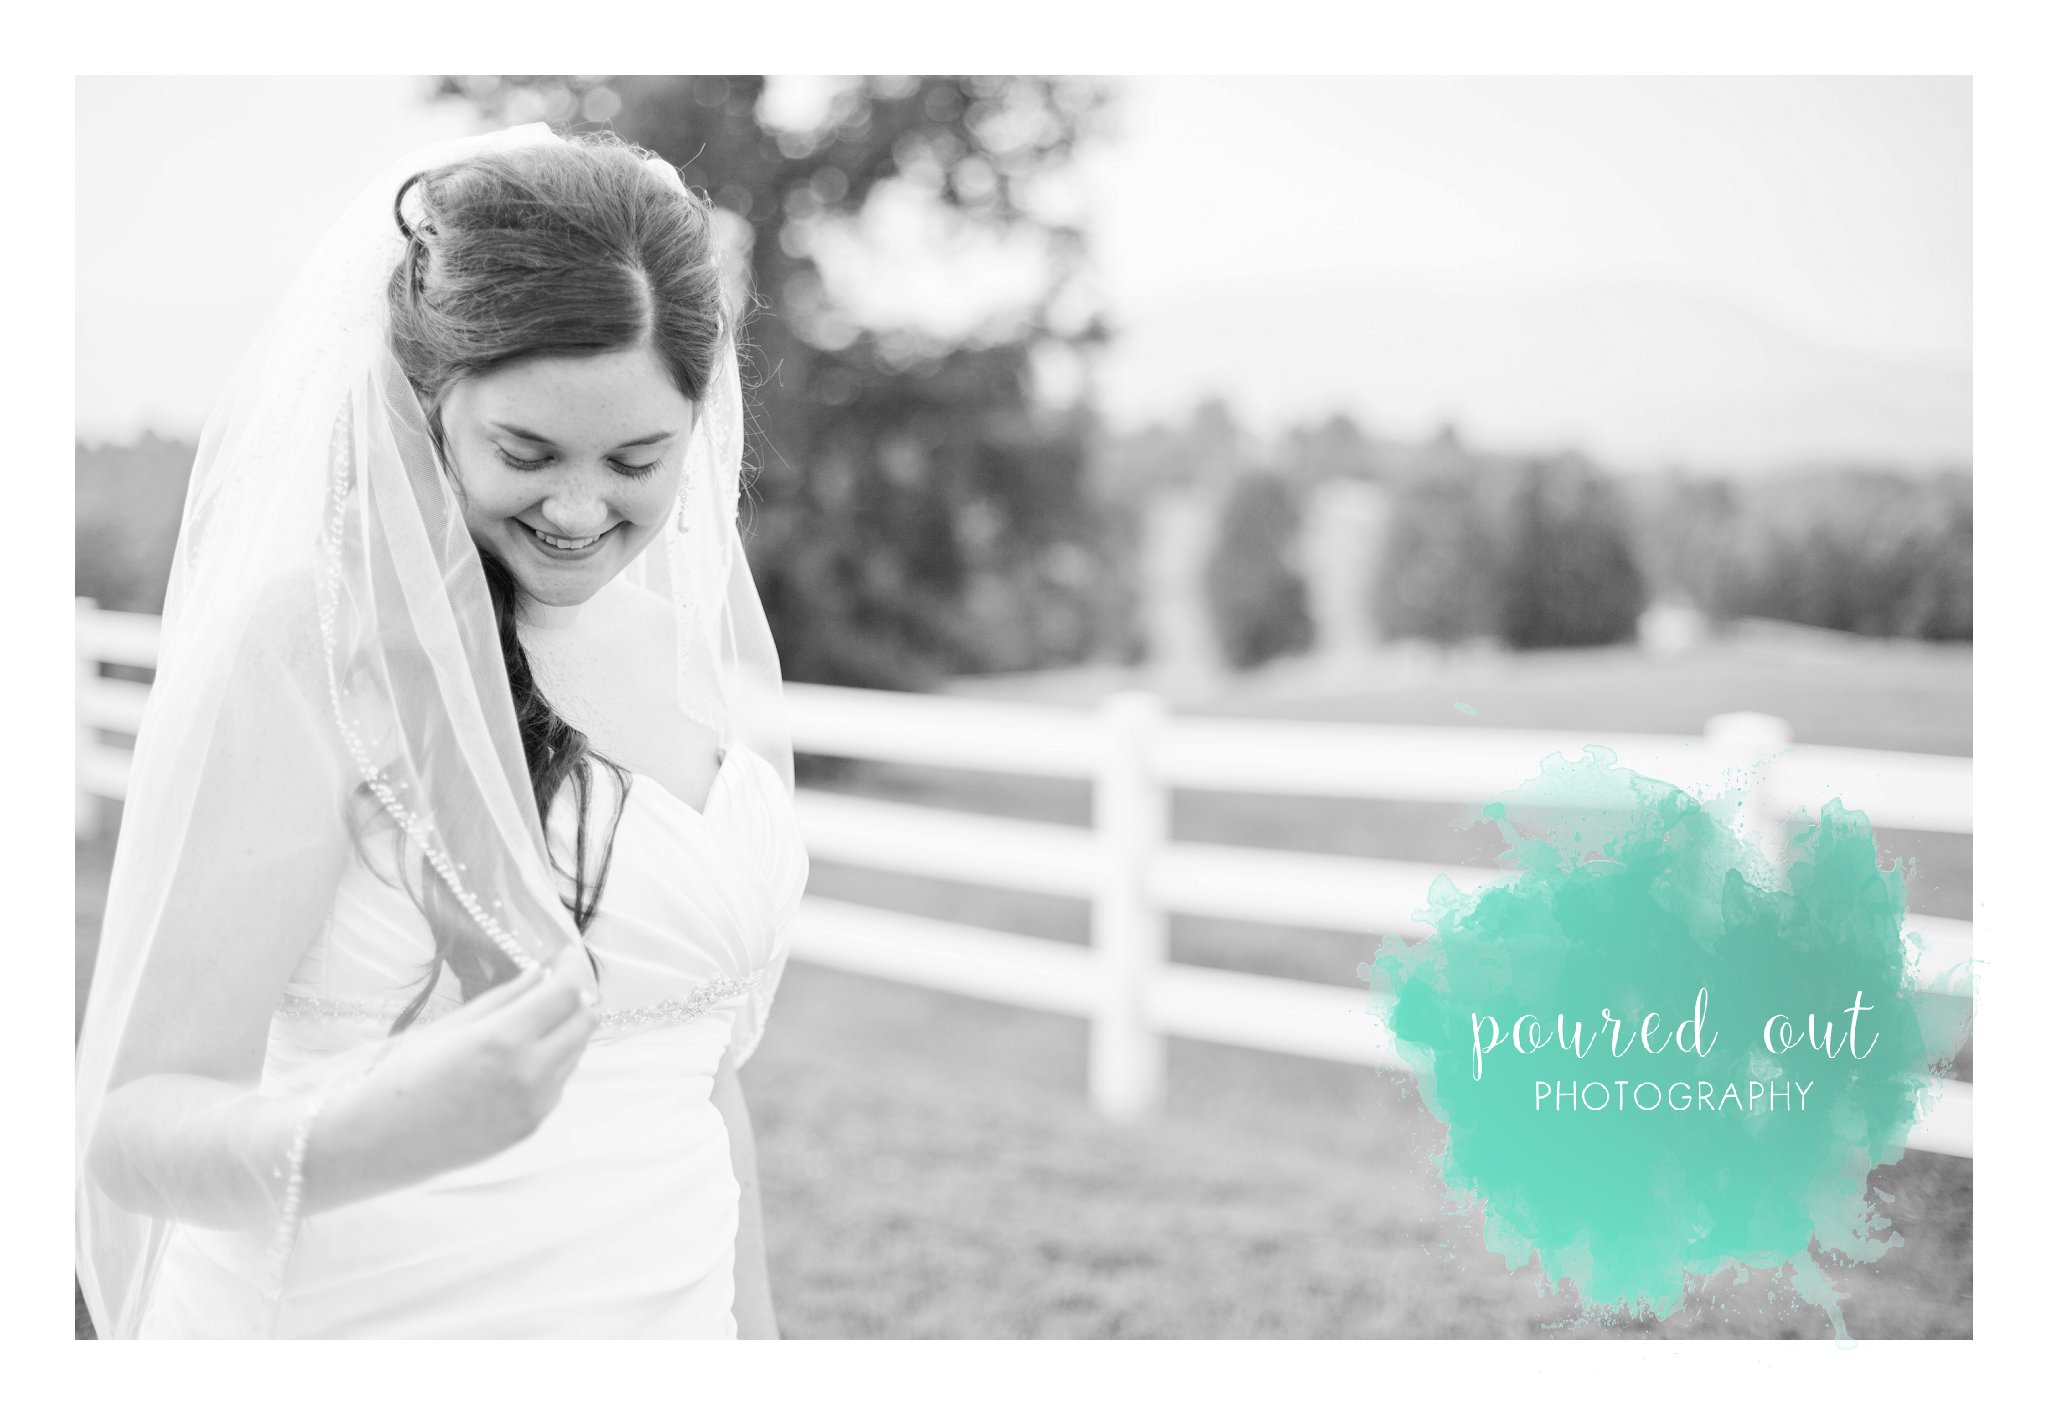 april_bridal_poured_out_photography-83_WEB.jpg